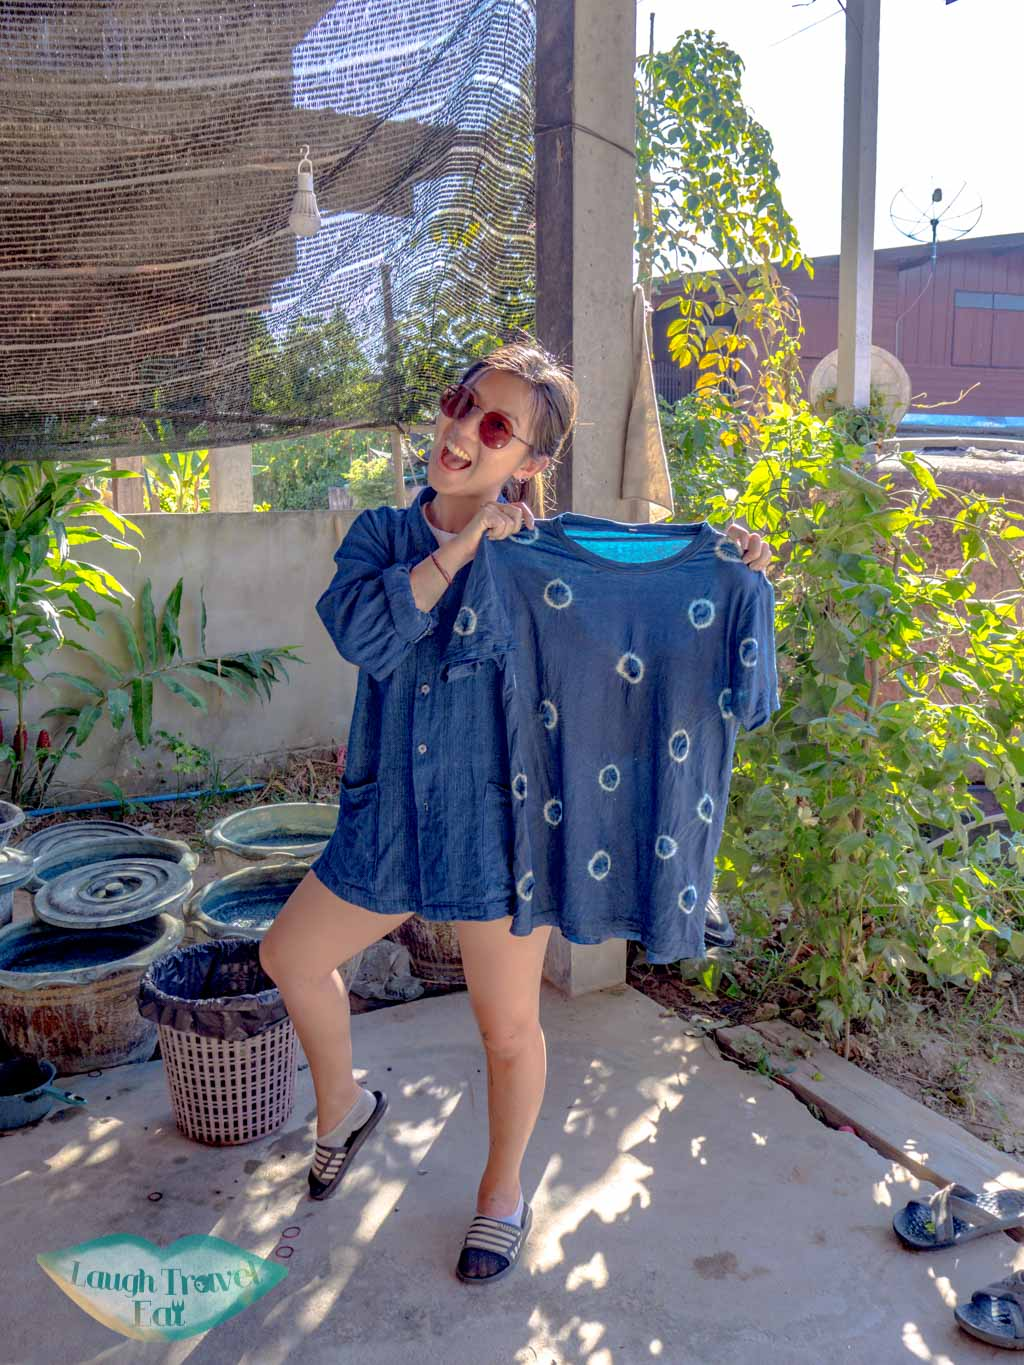 tie-dye-indigo-sakon-nahkon-thailand-laugh-travel-eat